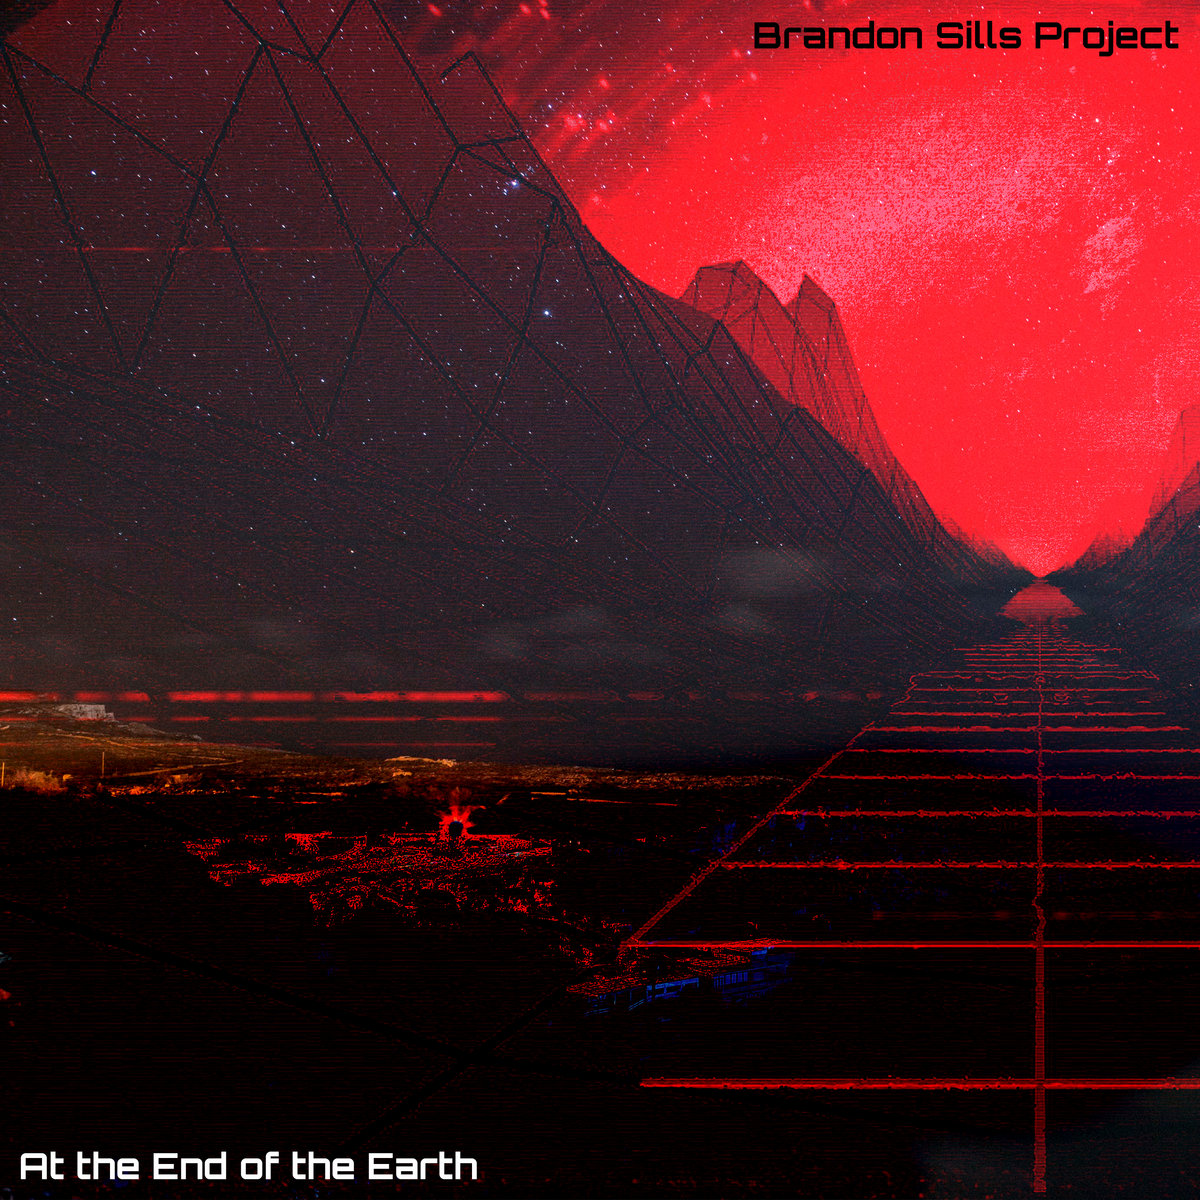 At the End of the Earth by Brandon Sills Project